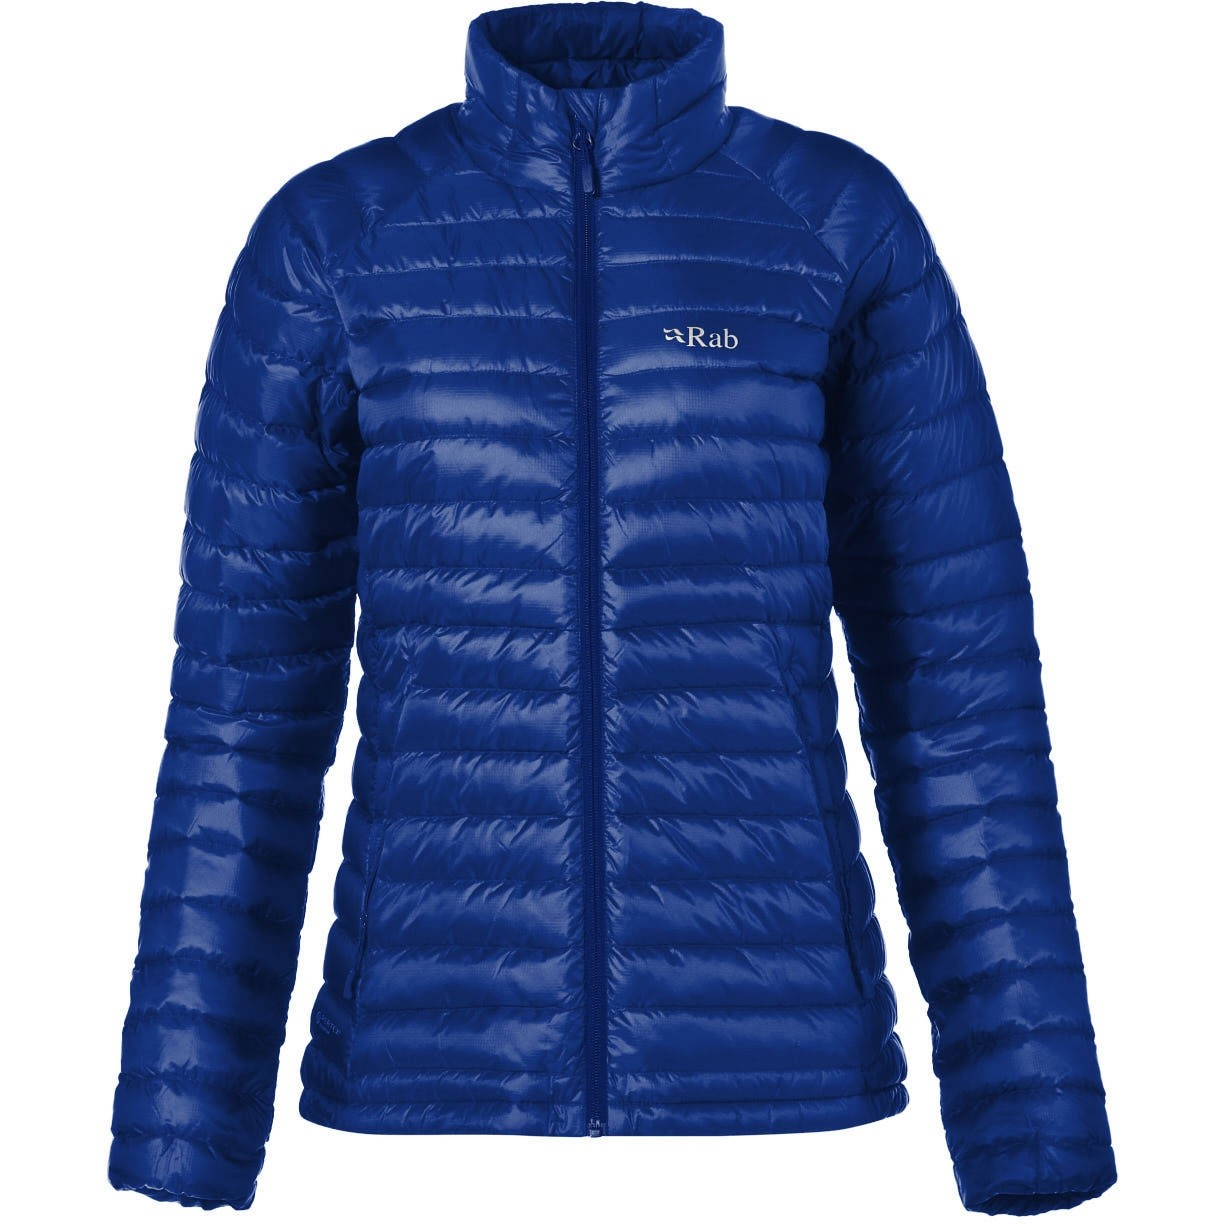 Rab Microlight Jacket - Women's - Blueprint/Celestial